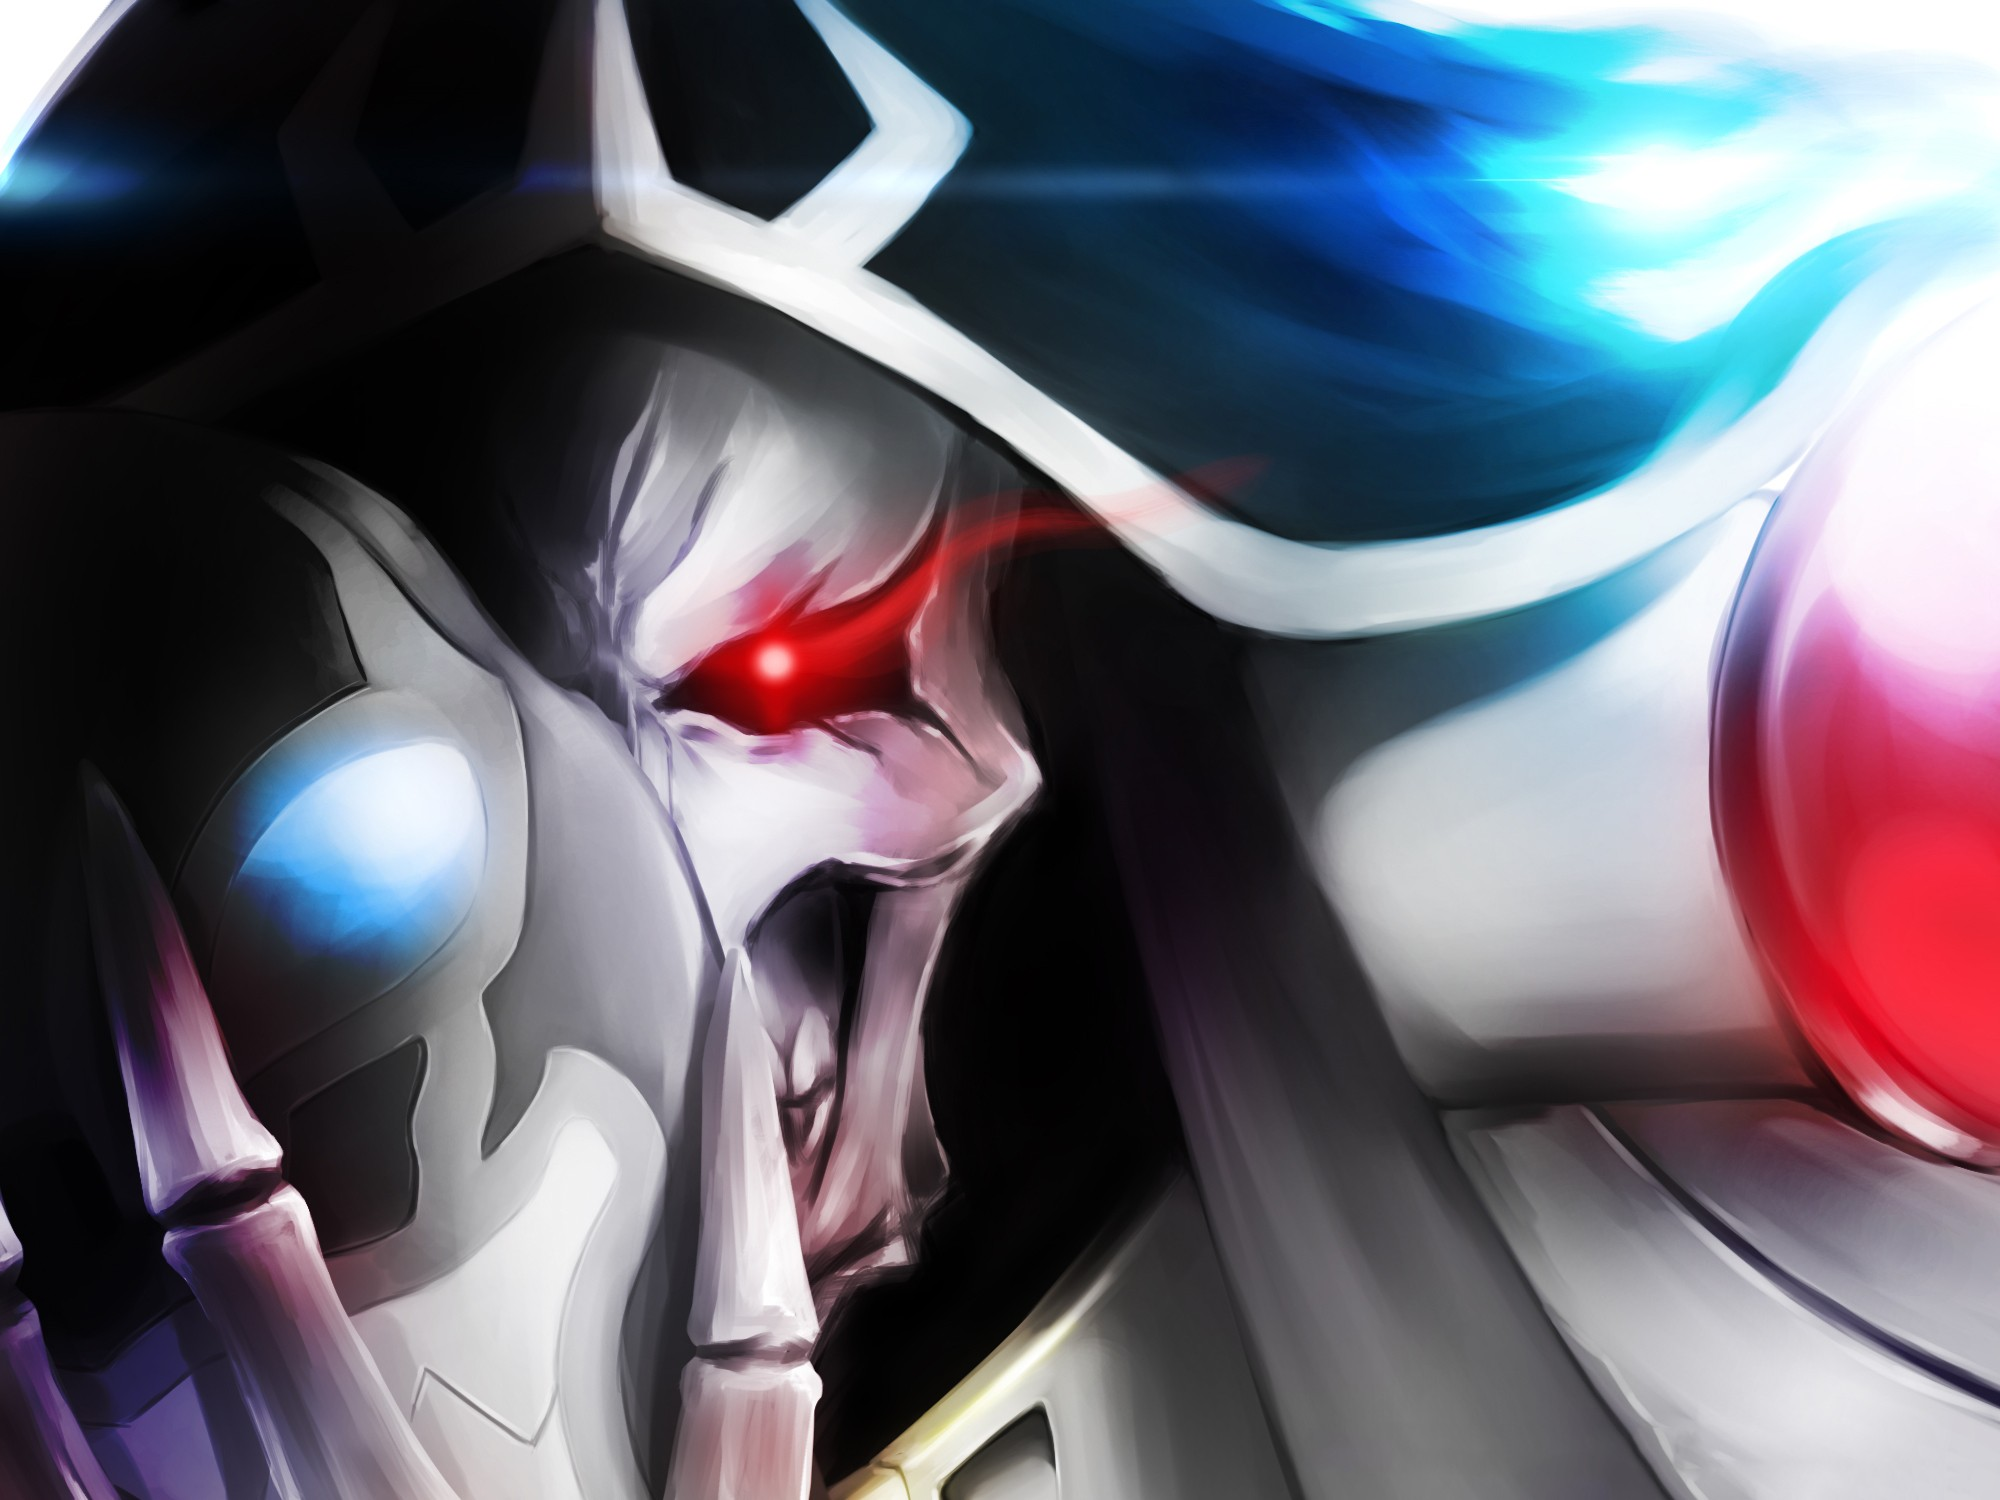 Overlord anime wallpaper download free stunning - Anime backgrounds hd 1920x1080 ...